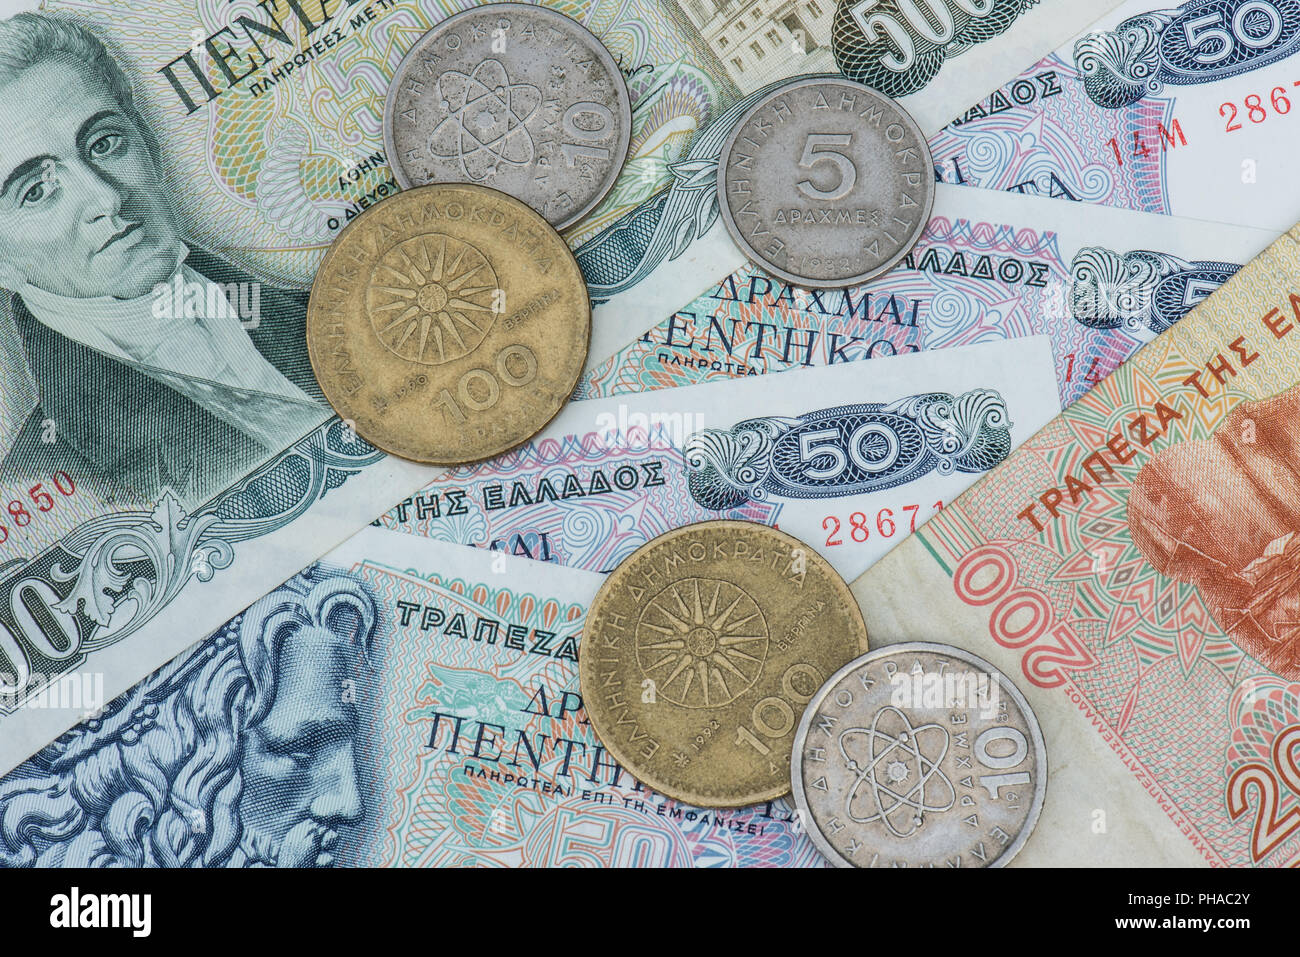 old greek currency Drachme - Stock Image